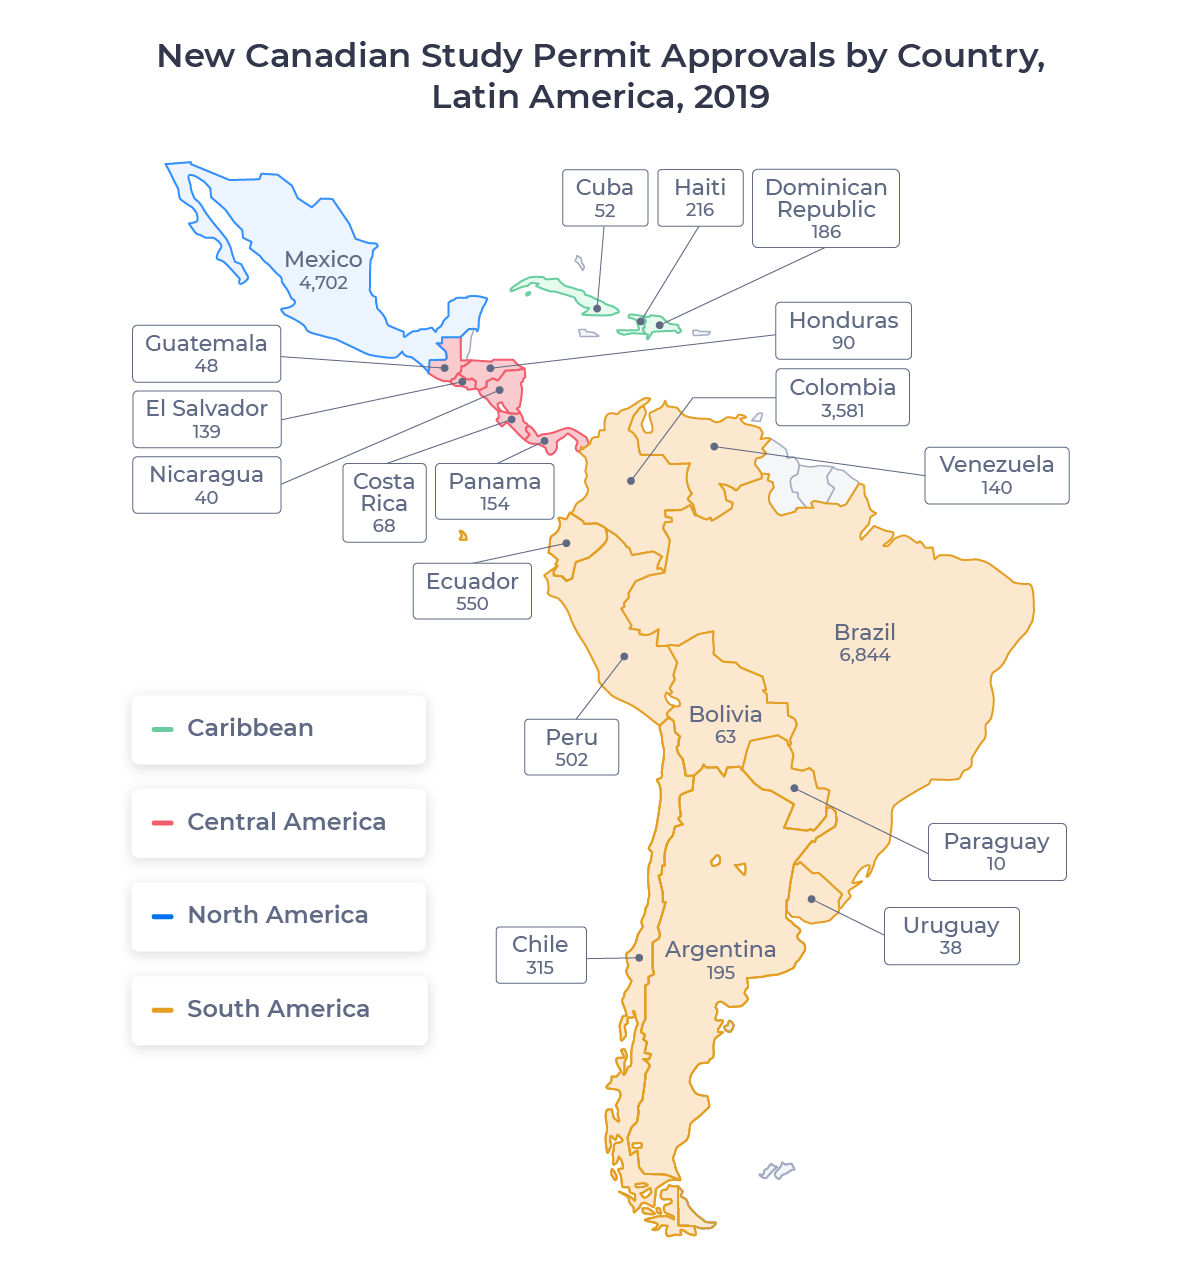 Map showing the countries of Latin America. Includes Argentina, Bolivia, Brazil, Chile, Colombia, Costa Rica, Cuba, Dominican Republic, Ecuador, El Salvador, Guatemala, Haiti, Honduras, Mexico, Nicaragua, Panama, Paraguay, Peru, Uruguay, and Venezuela.